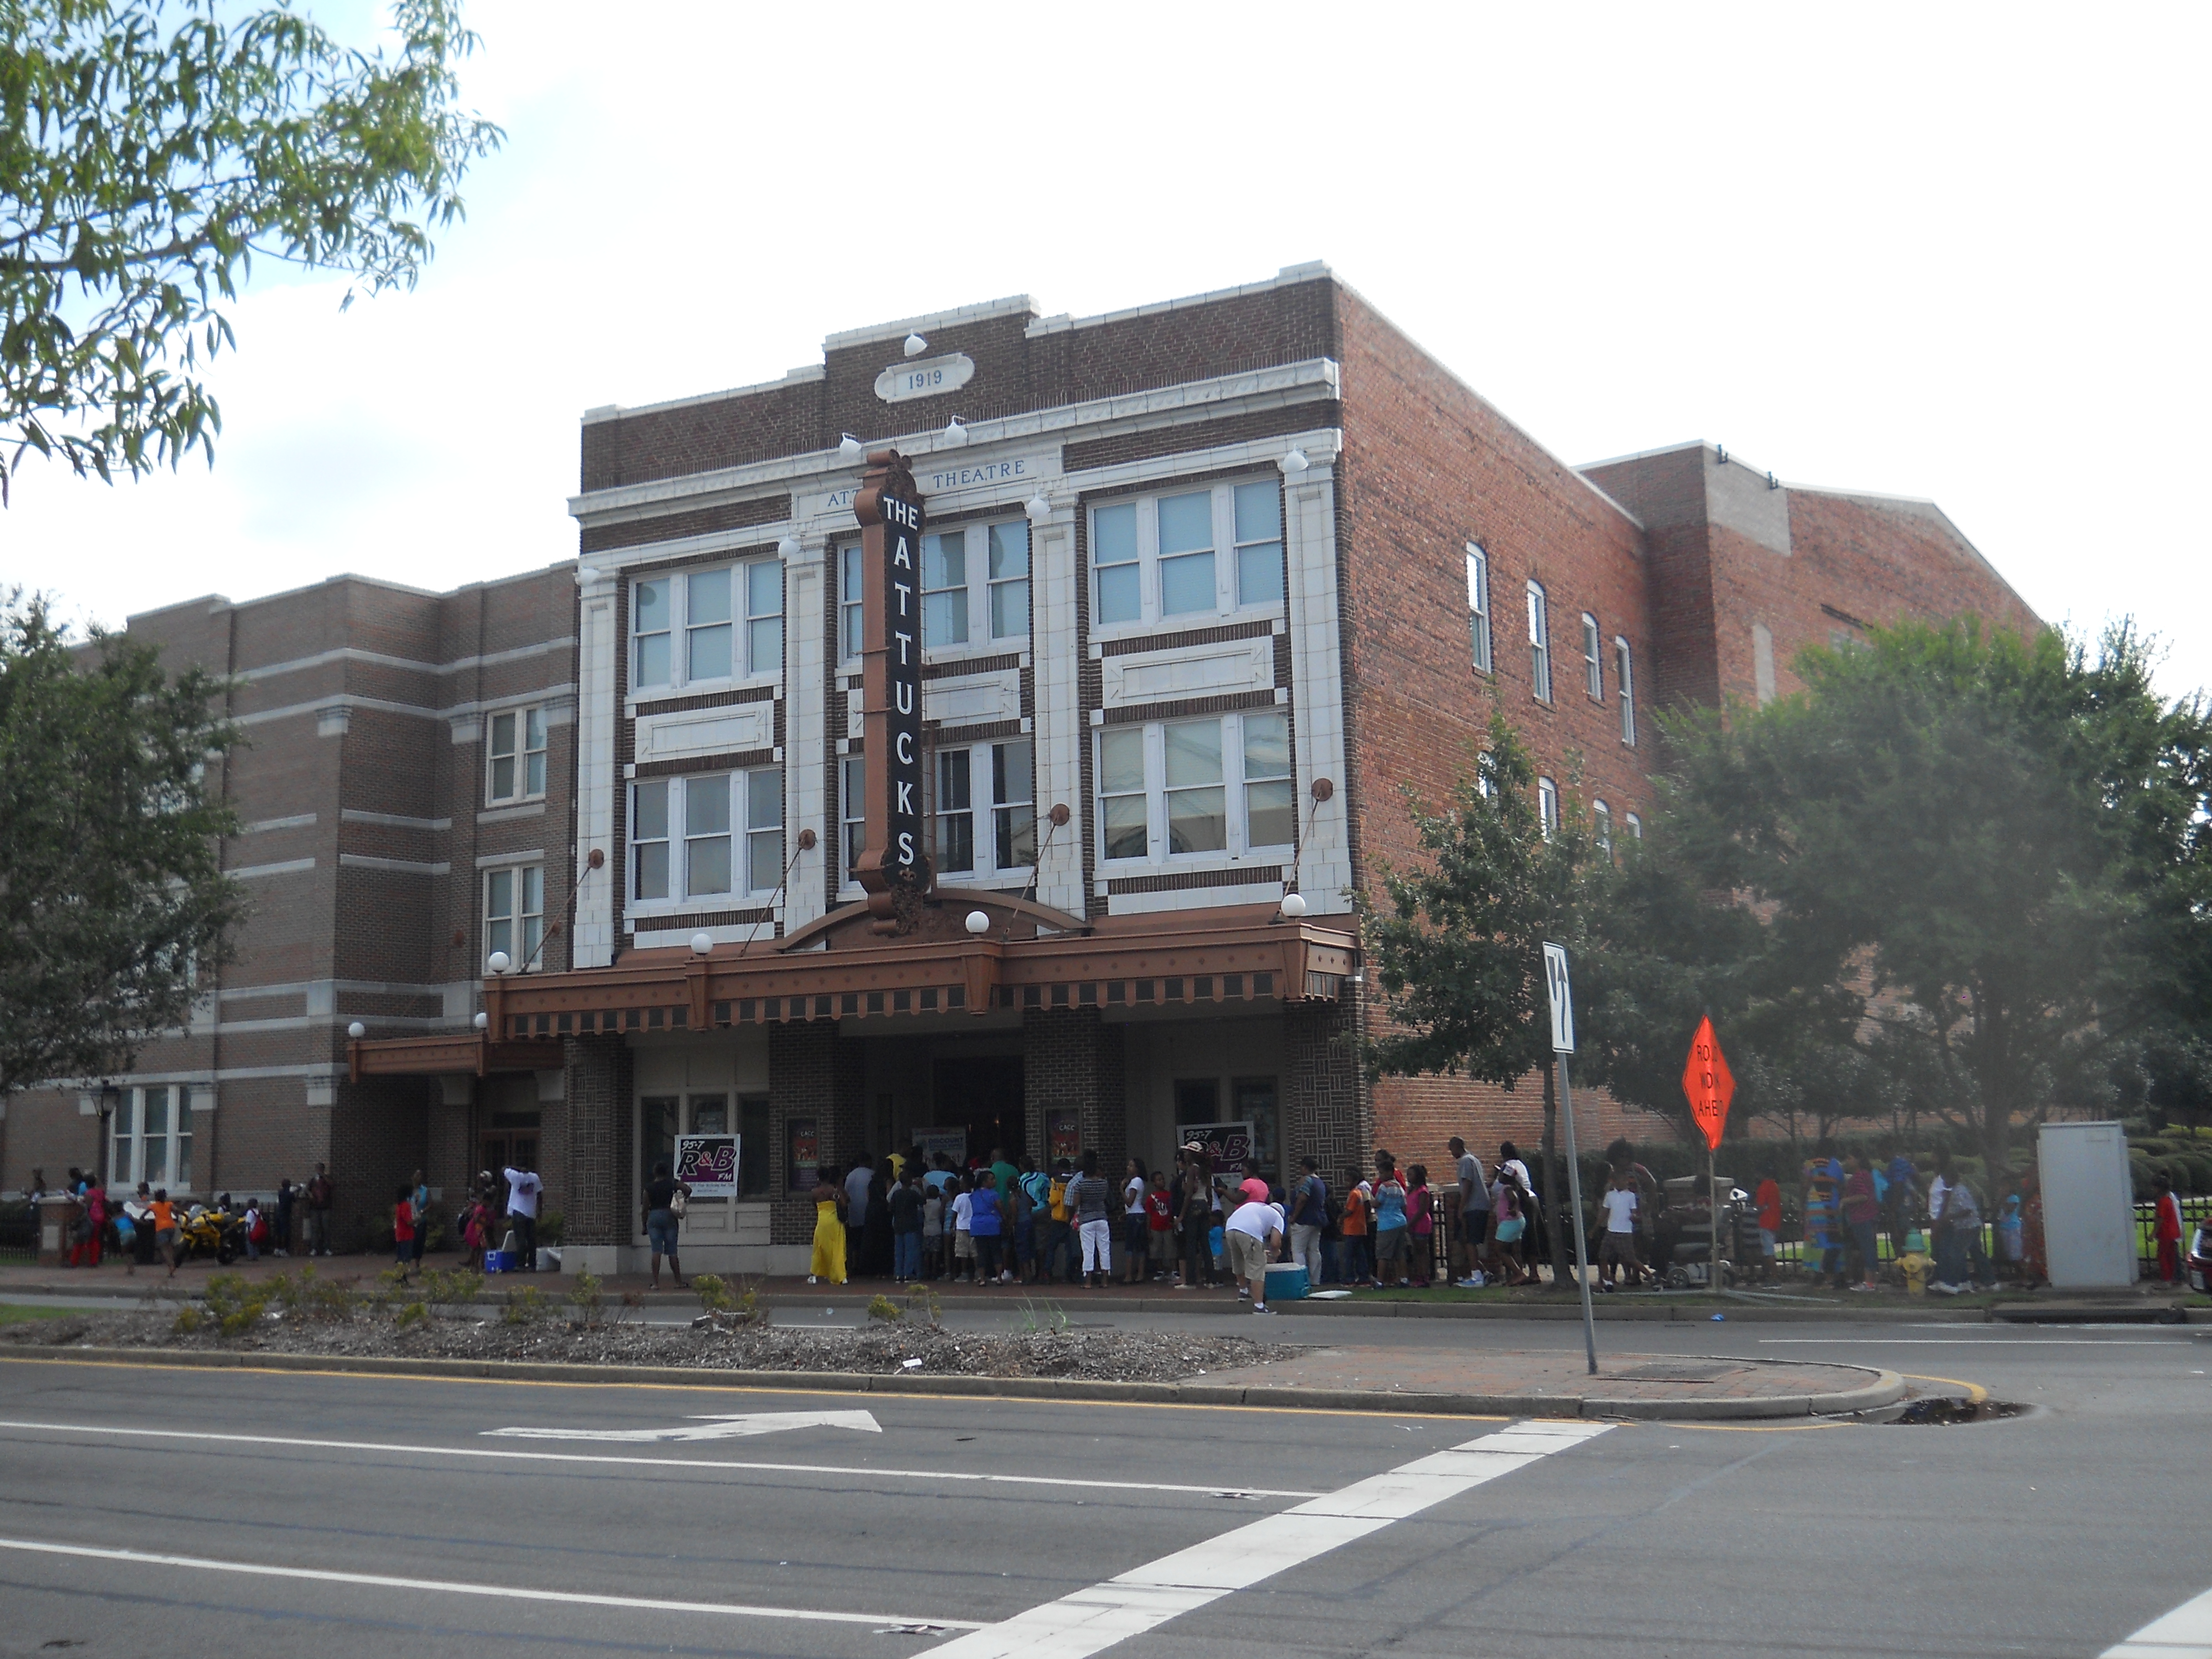 Attucks Theatre, Norfok, VA